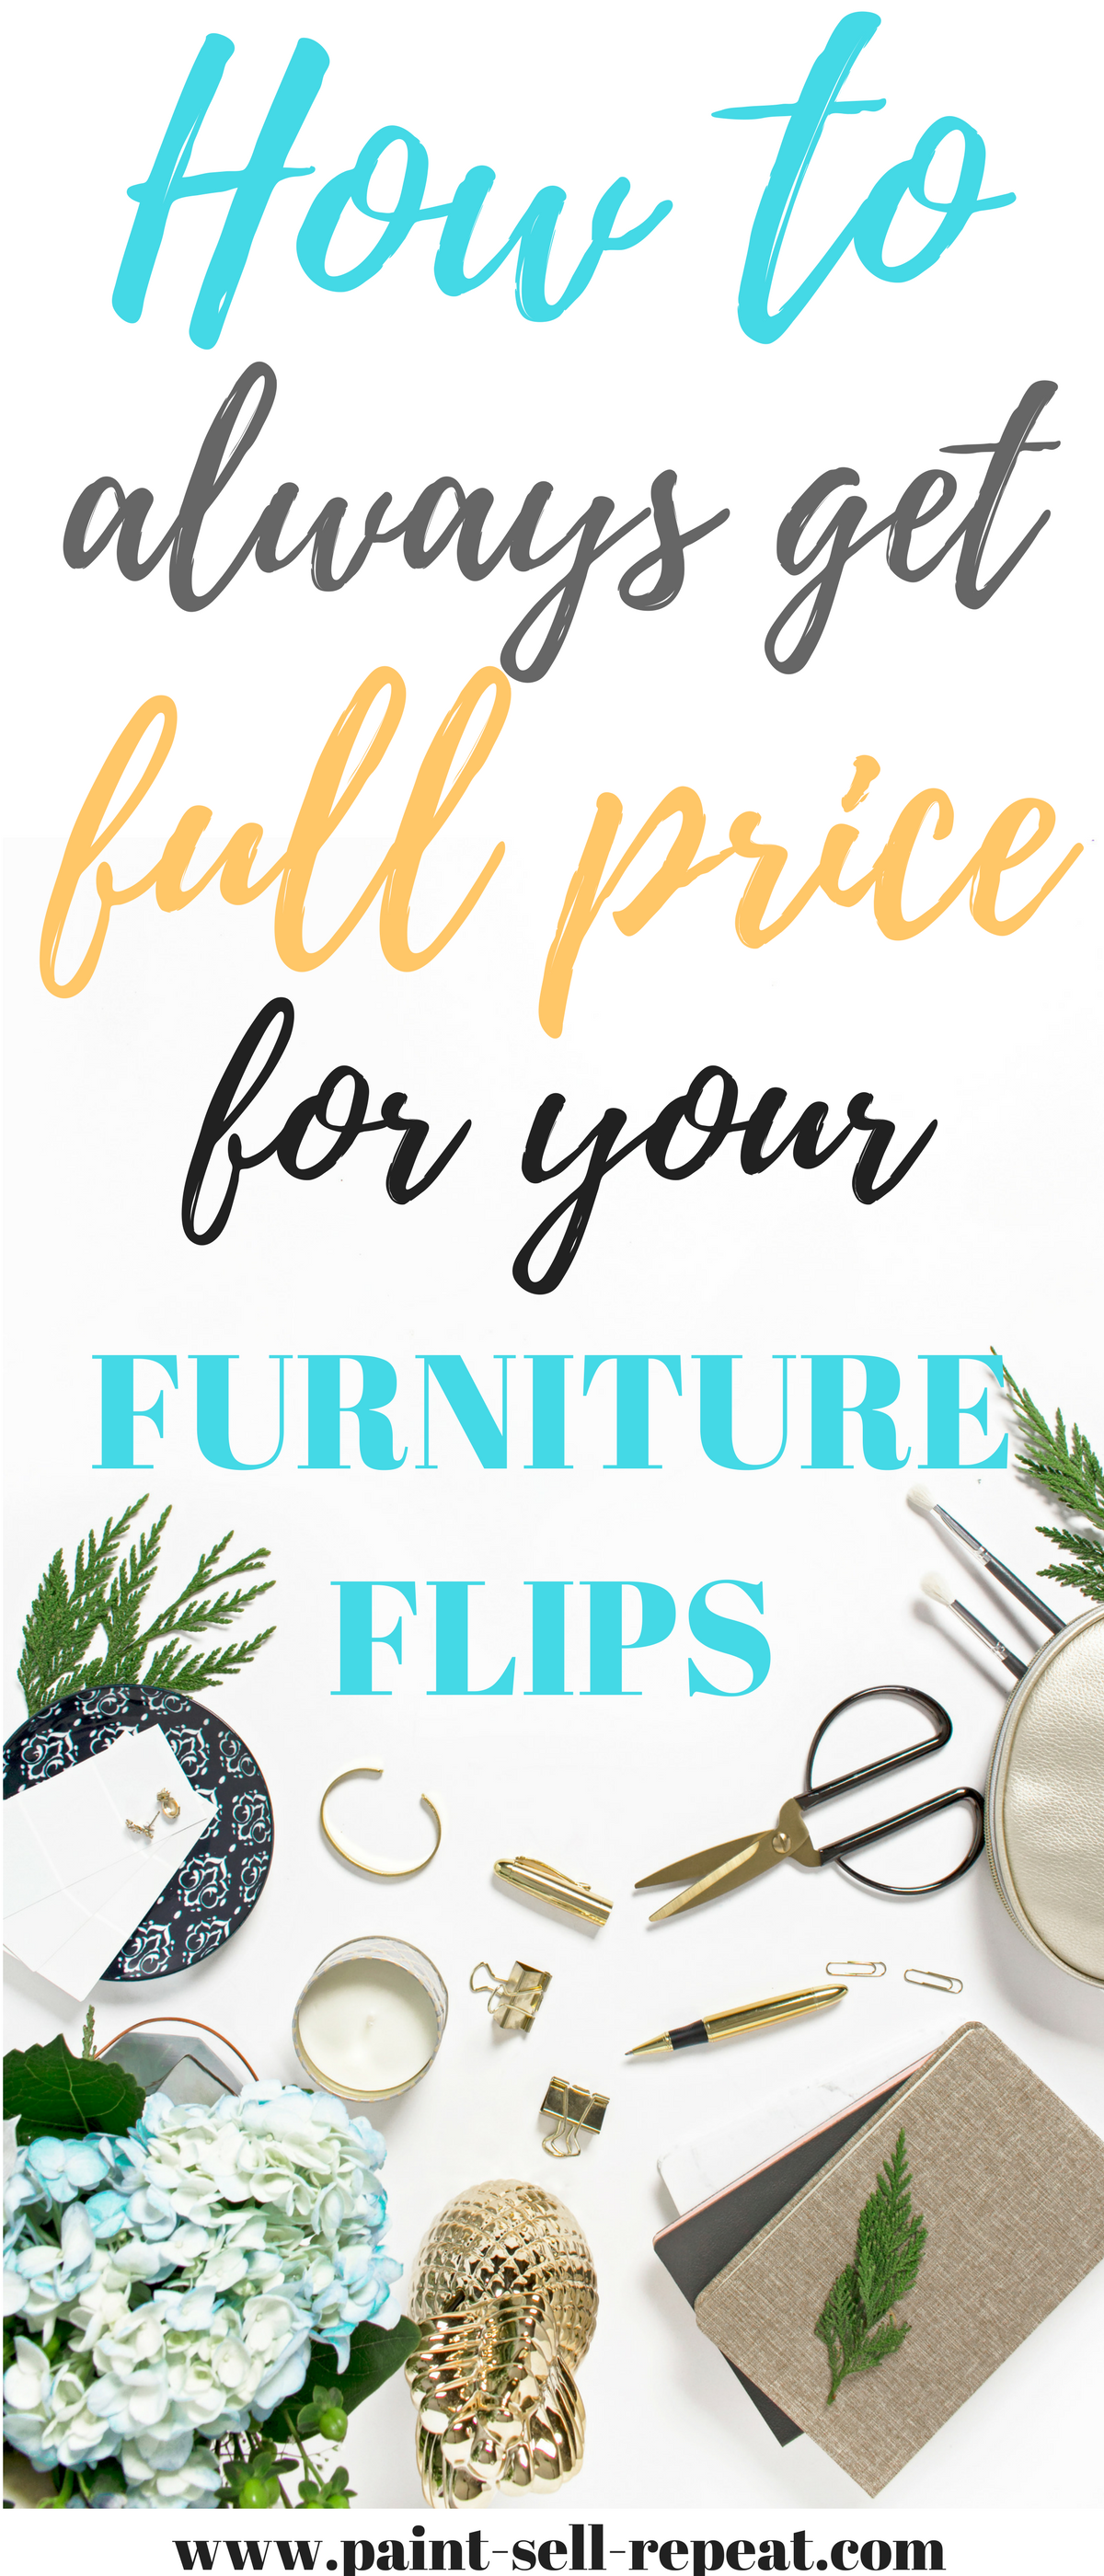 How to always get full price for your furniture flips business